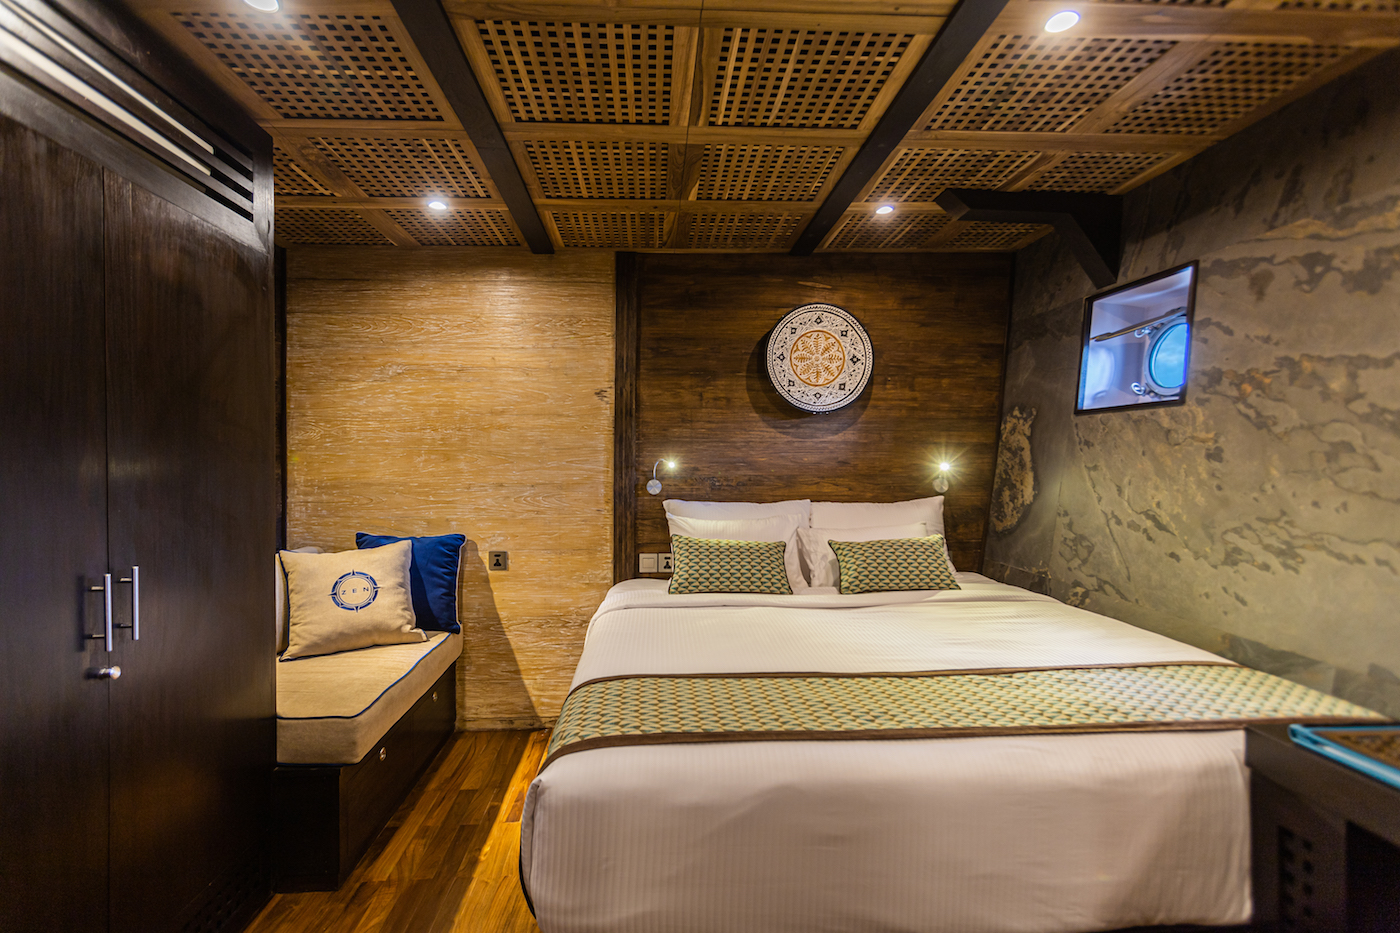 Sea Star Suite In Double BEd